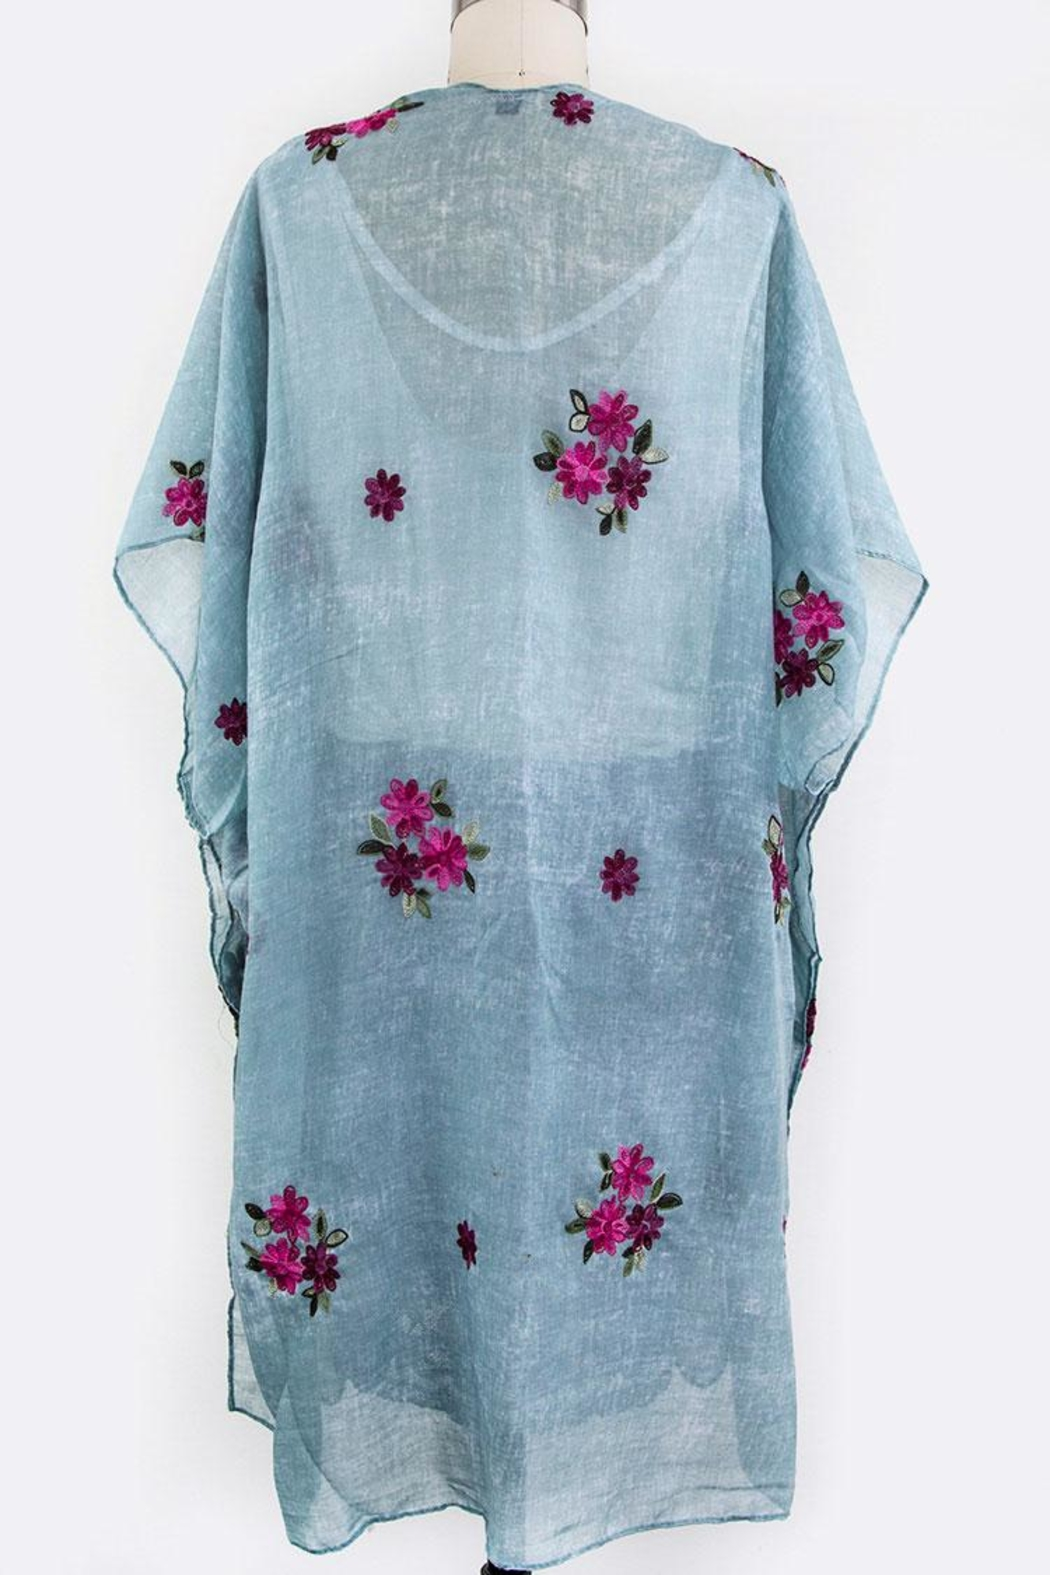 Nadya's Closet Embroidered Floral Cardigan - Back Cropped Image